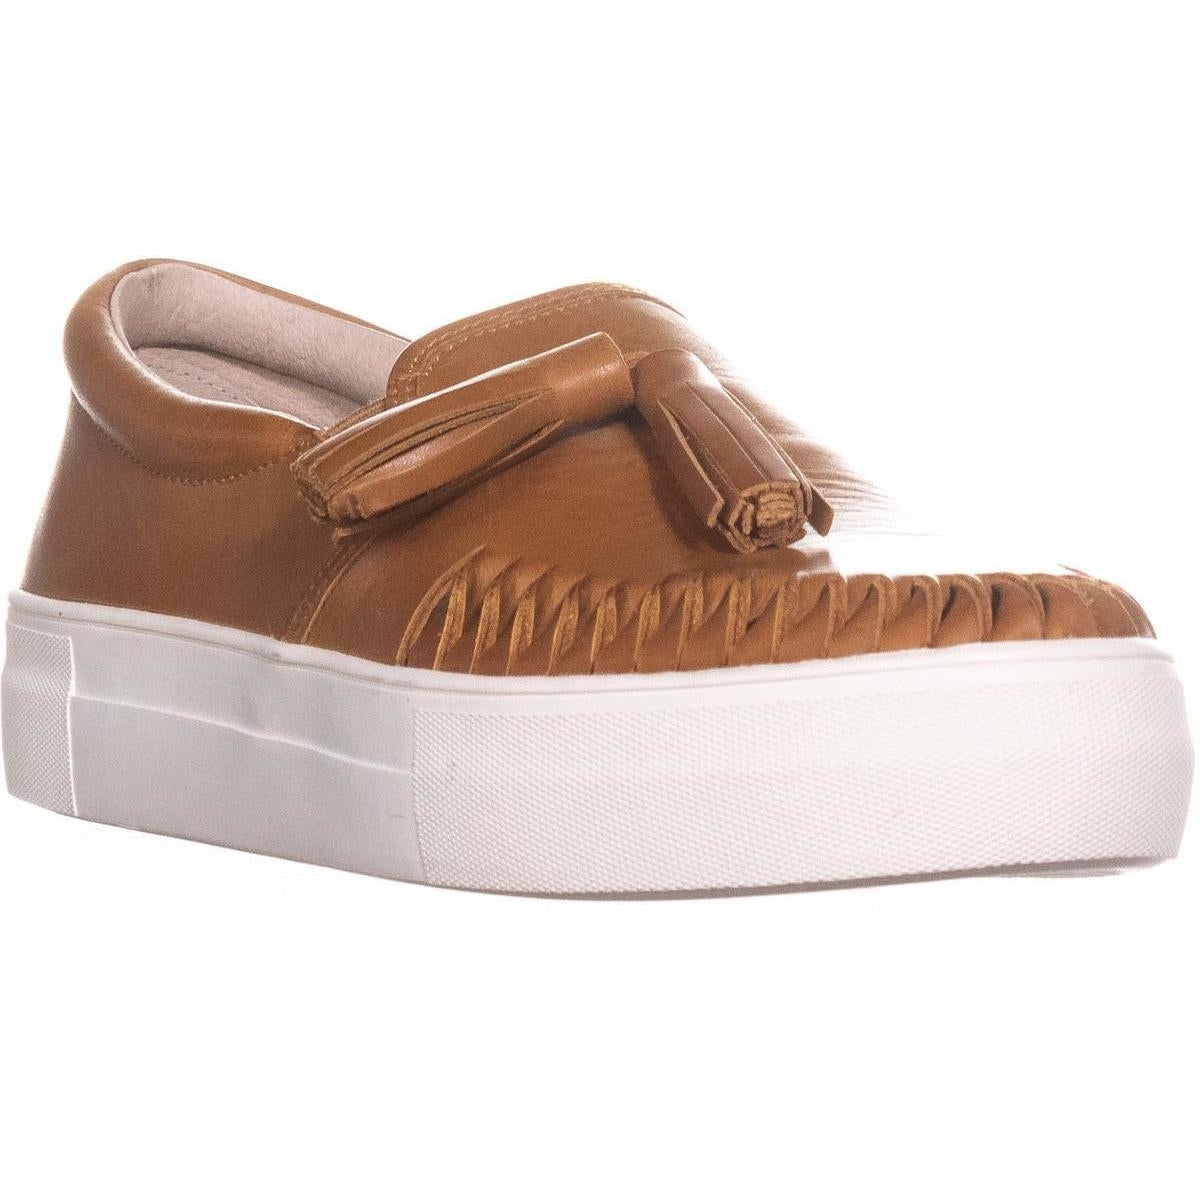 Vince Camuto Women/'s Kayleena Slip On Leather Fashion Sneakers Equestrian Brown